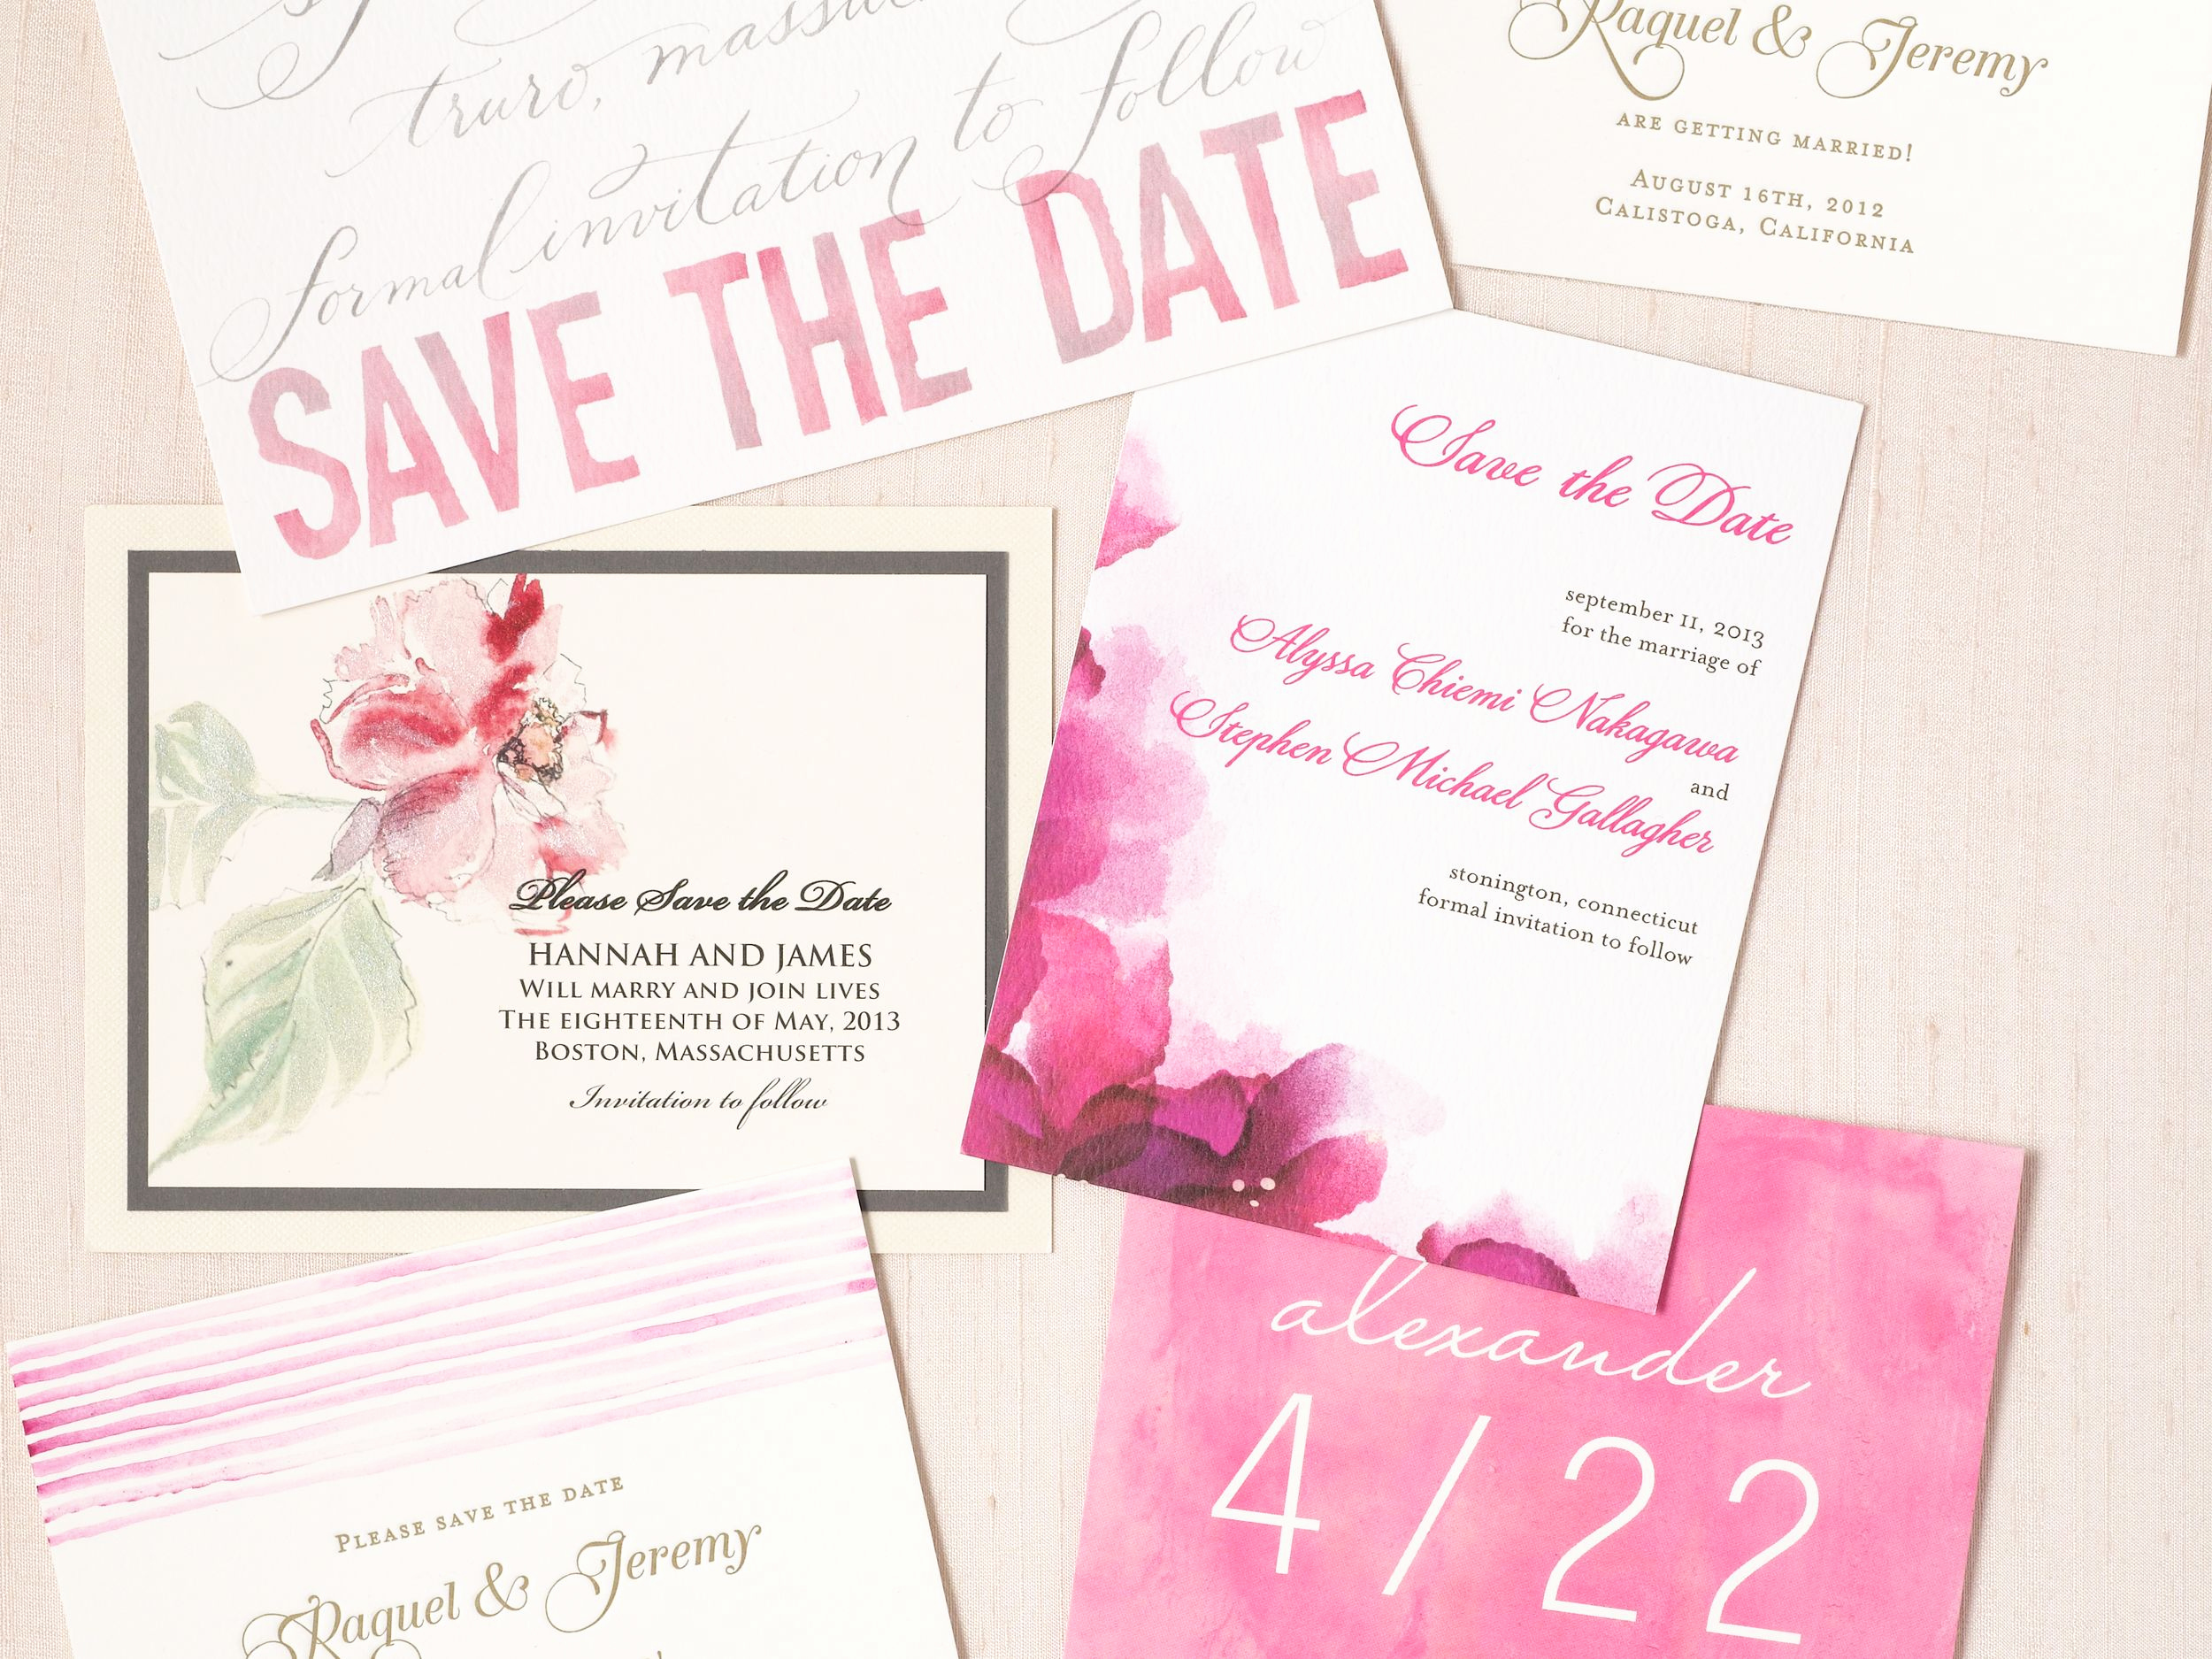 Save the Date Invitation Ideas Beautiful Save the Date Etiquette Tips